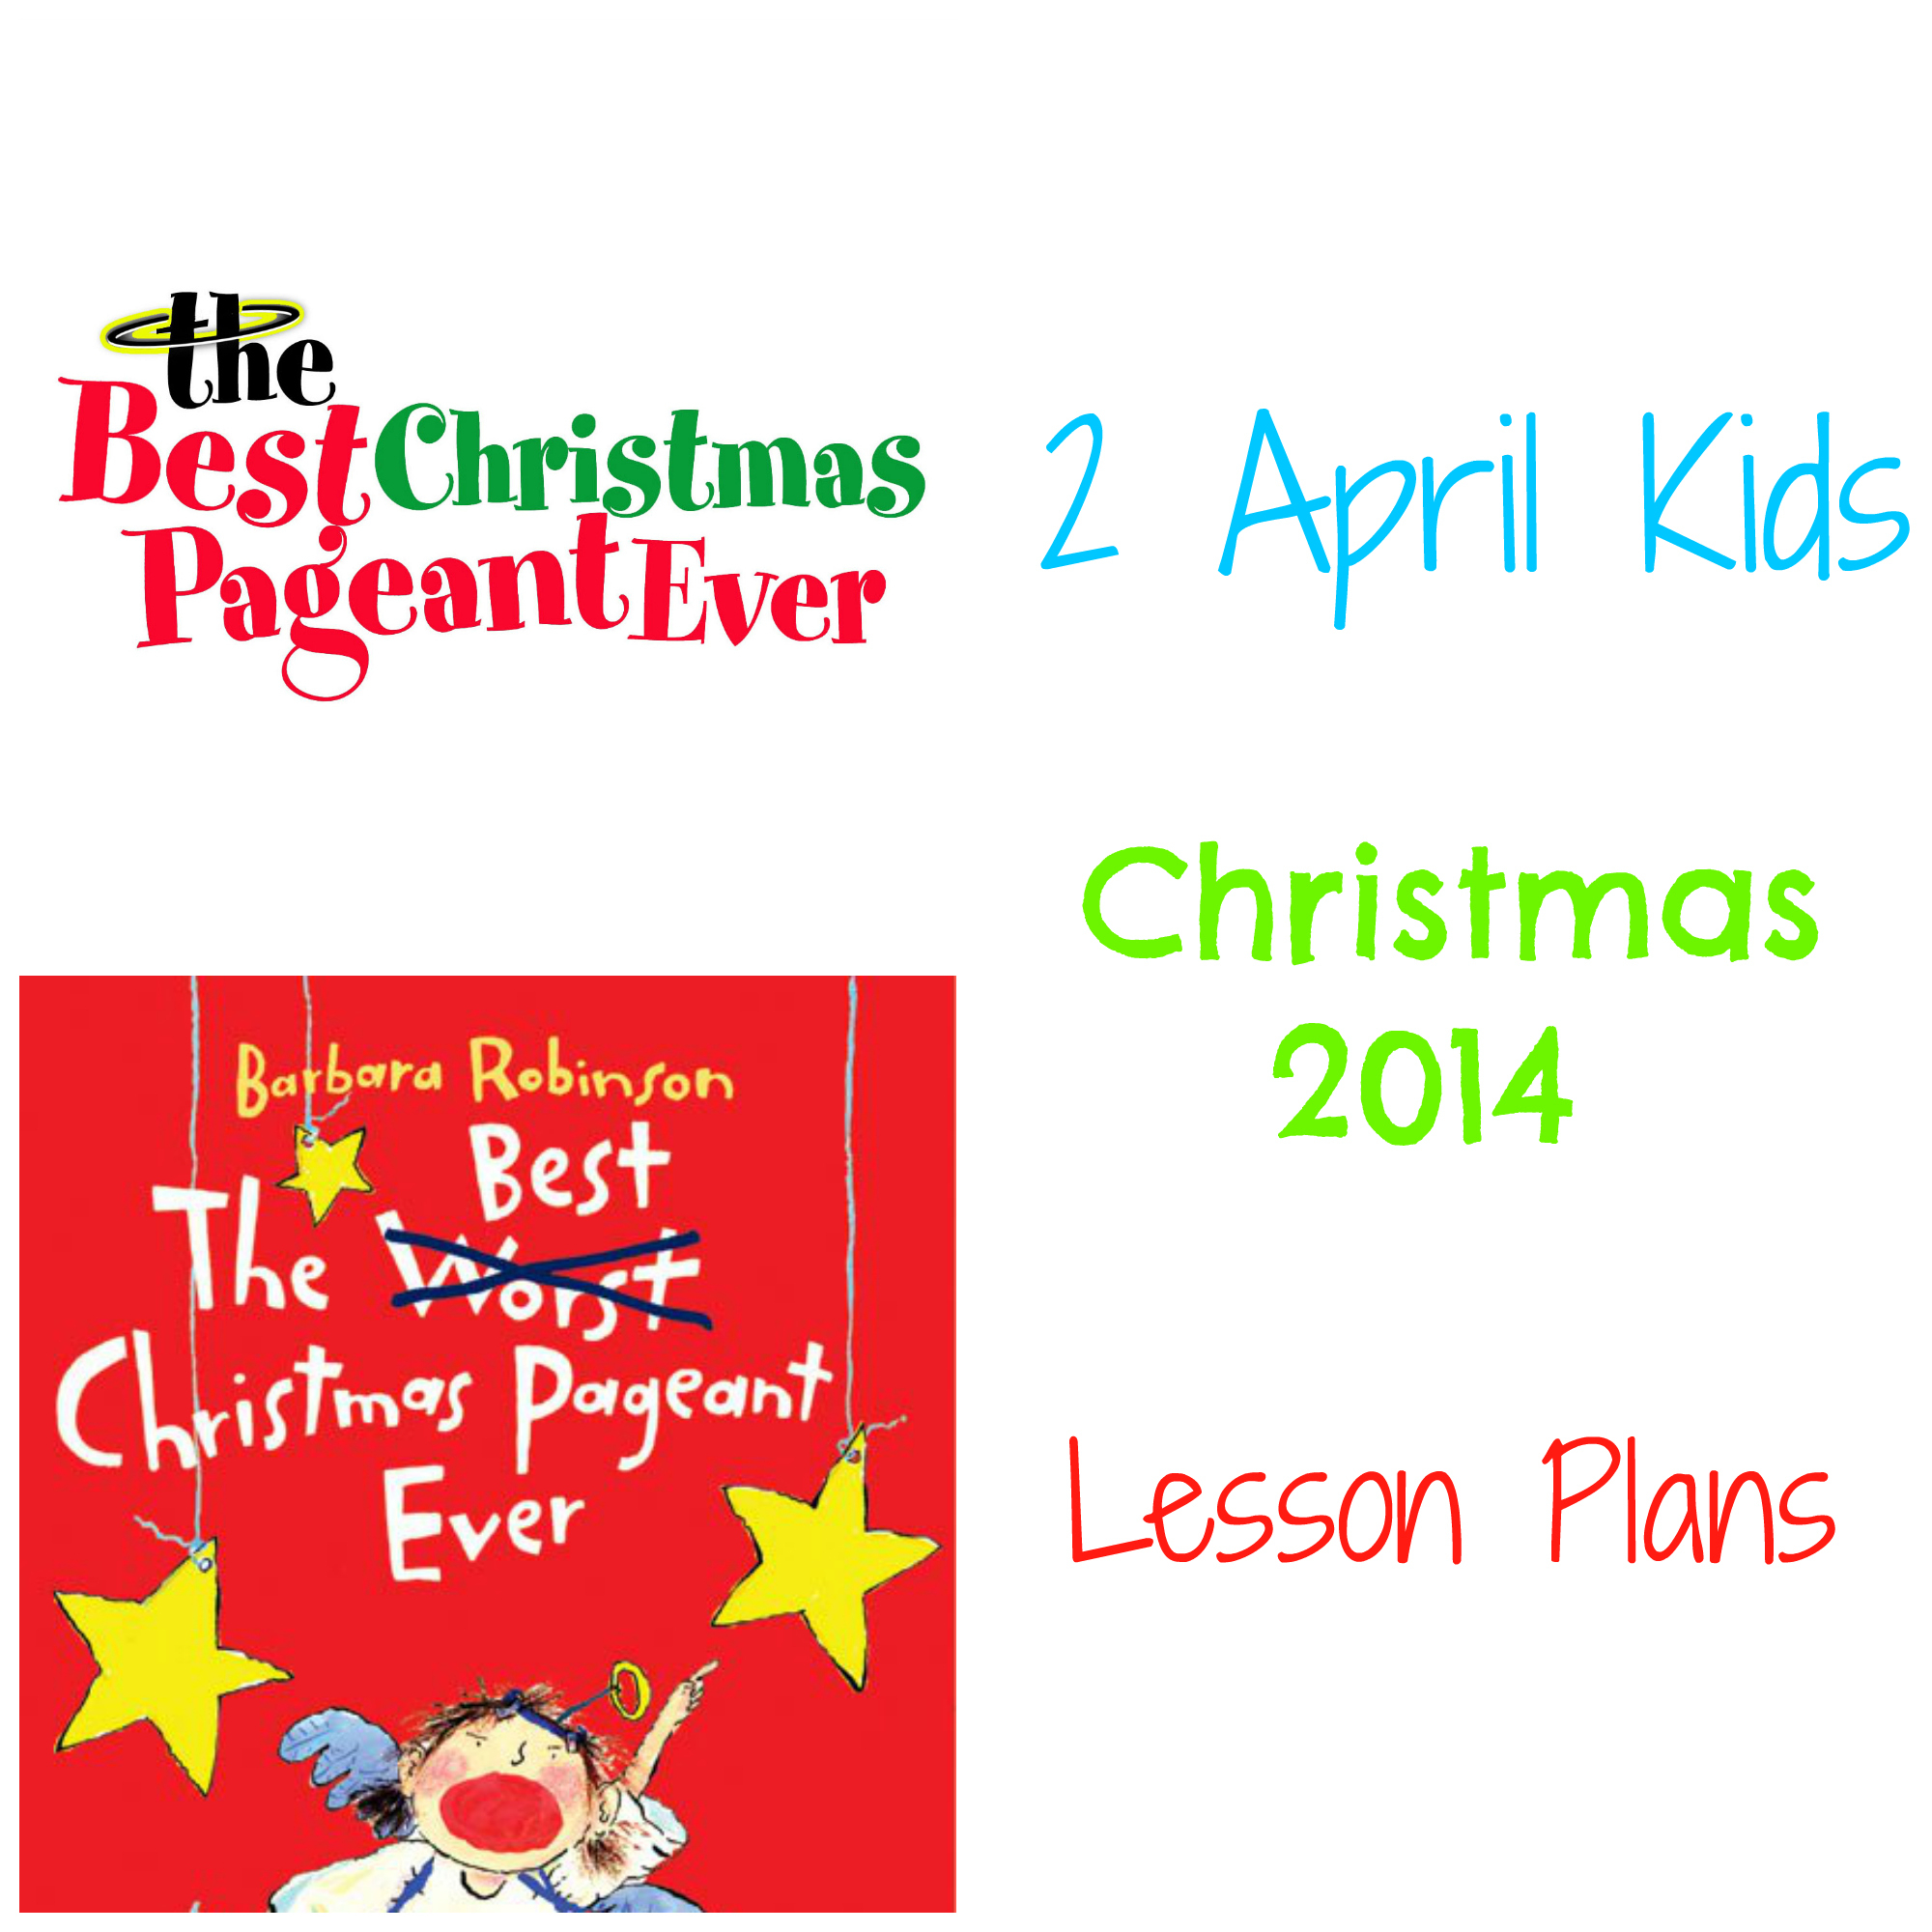 Our Homeschool Christmas Unit 2014 – The Best Christmas